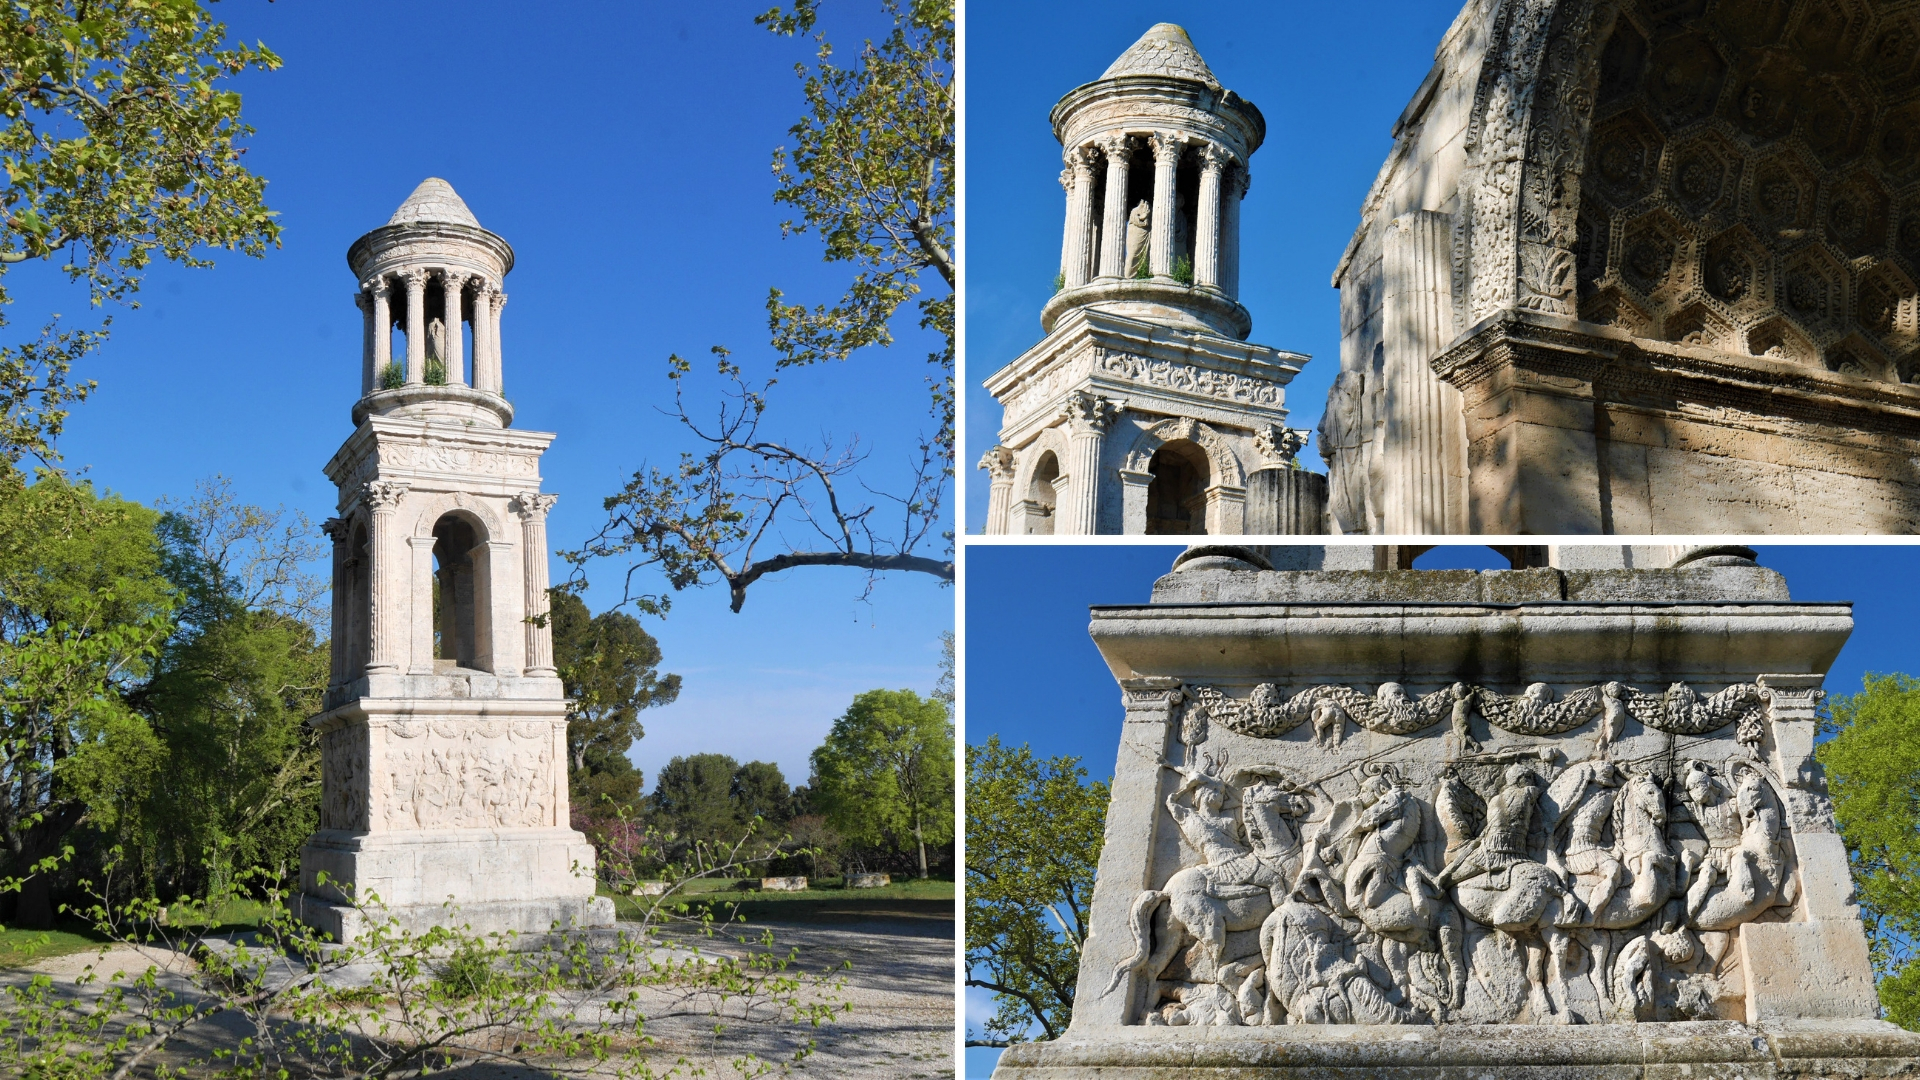 Glanum Antique Saint Remy de Provence